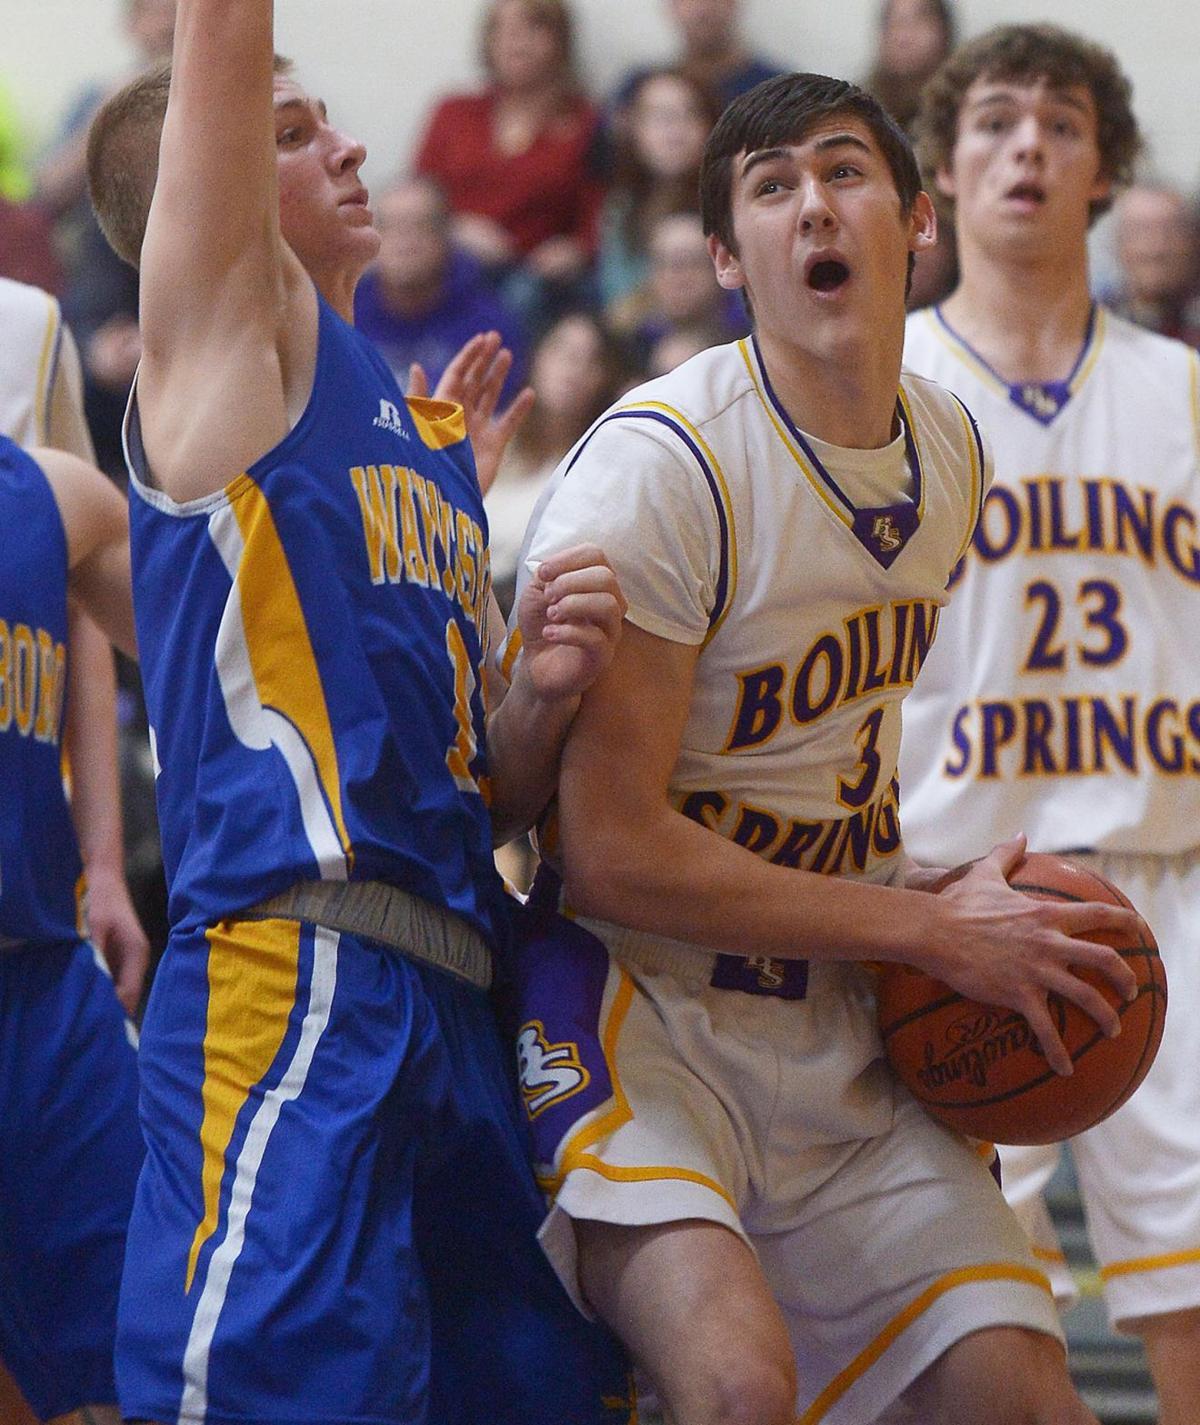 School Shooting Today In Baltimore: Dylan LaNoue's Late Heroics, 24 Points Lead Boiling